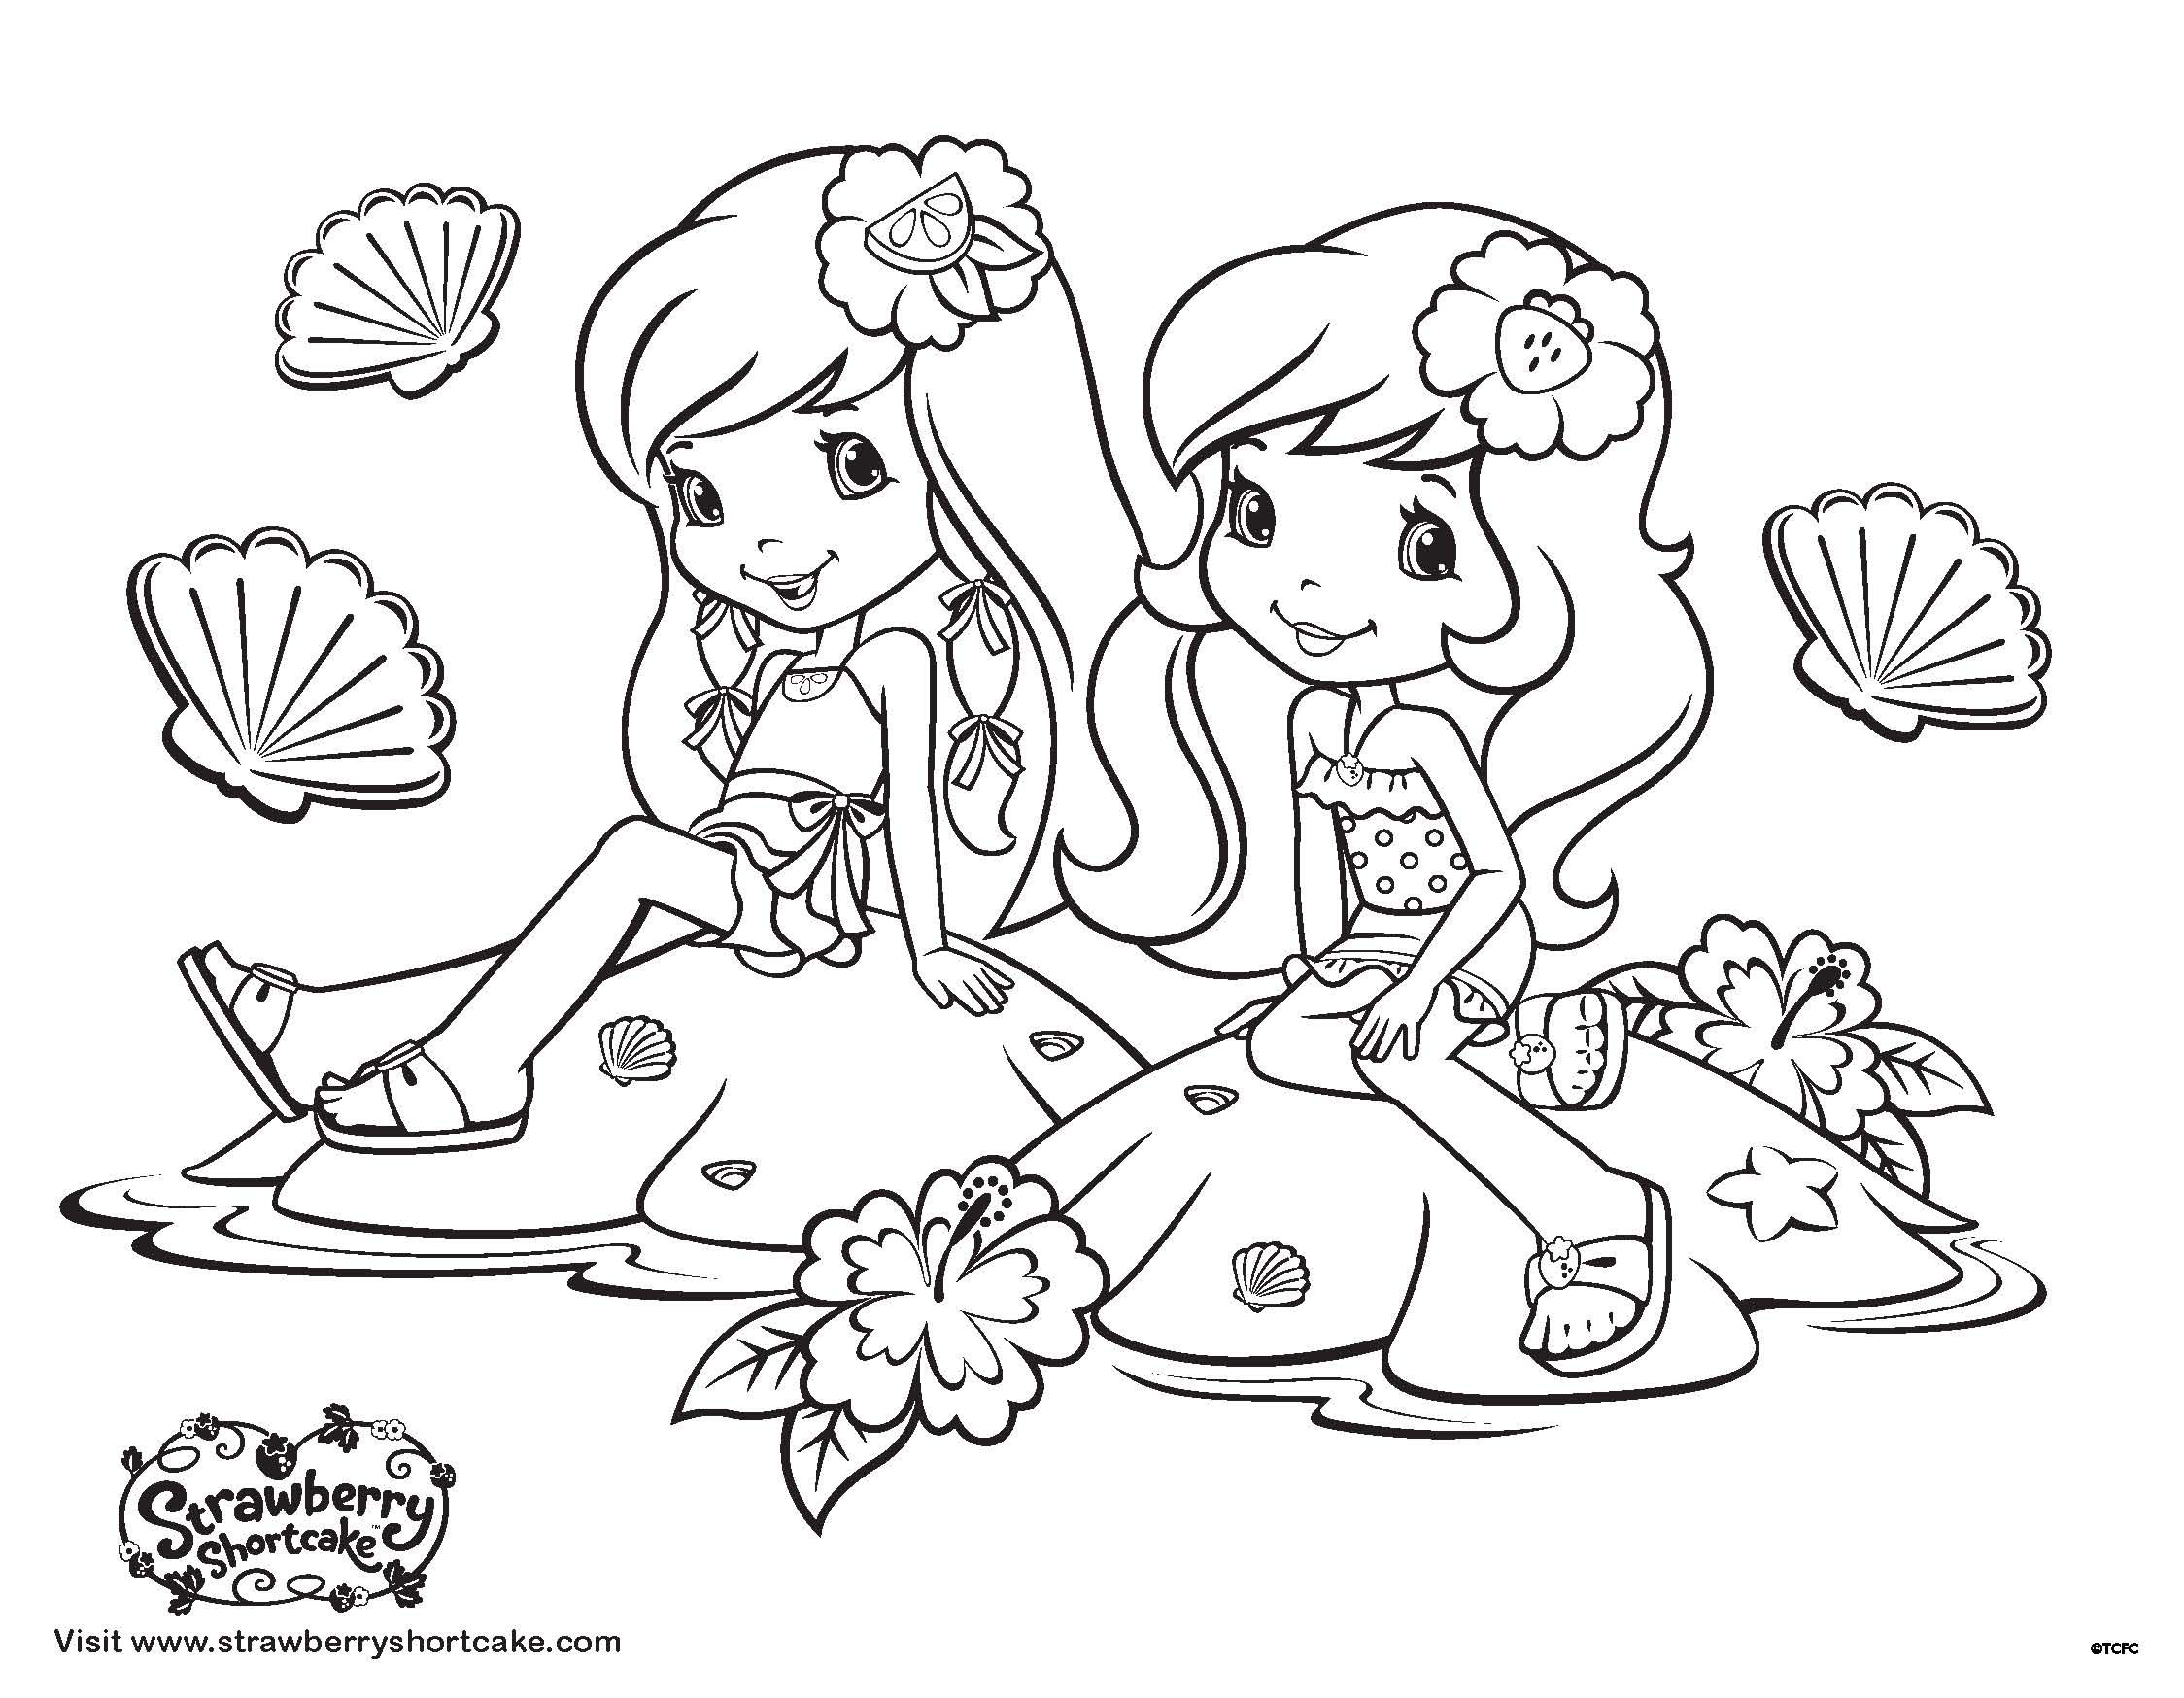 Color Up Some Summer Fun With This New Coloring Book Page